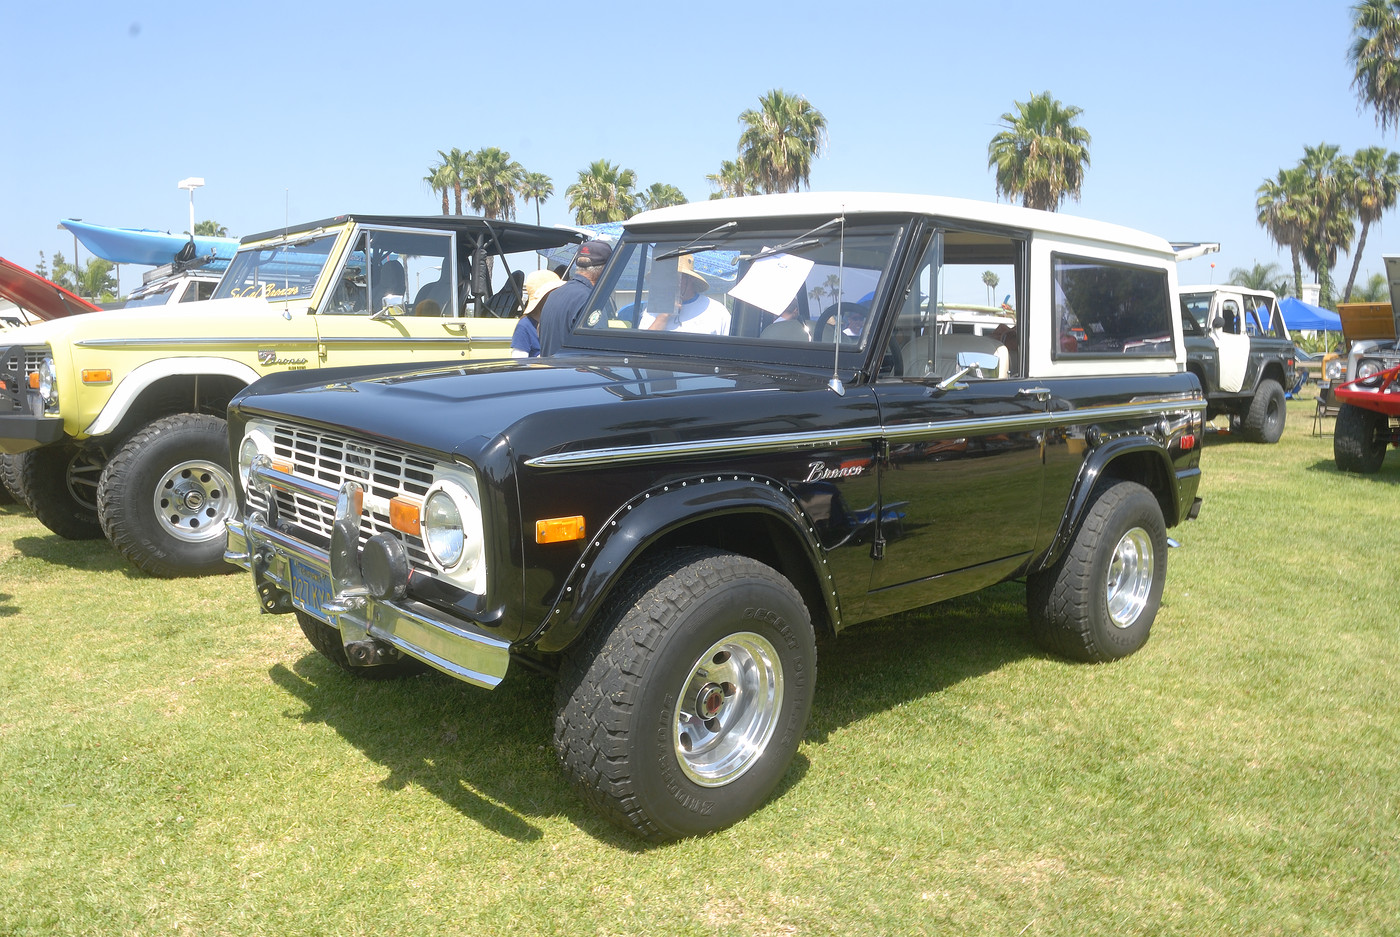 1974 Ford Bronco owned by Allan Eckert DSC 4921